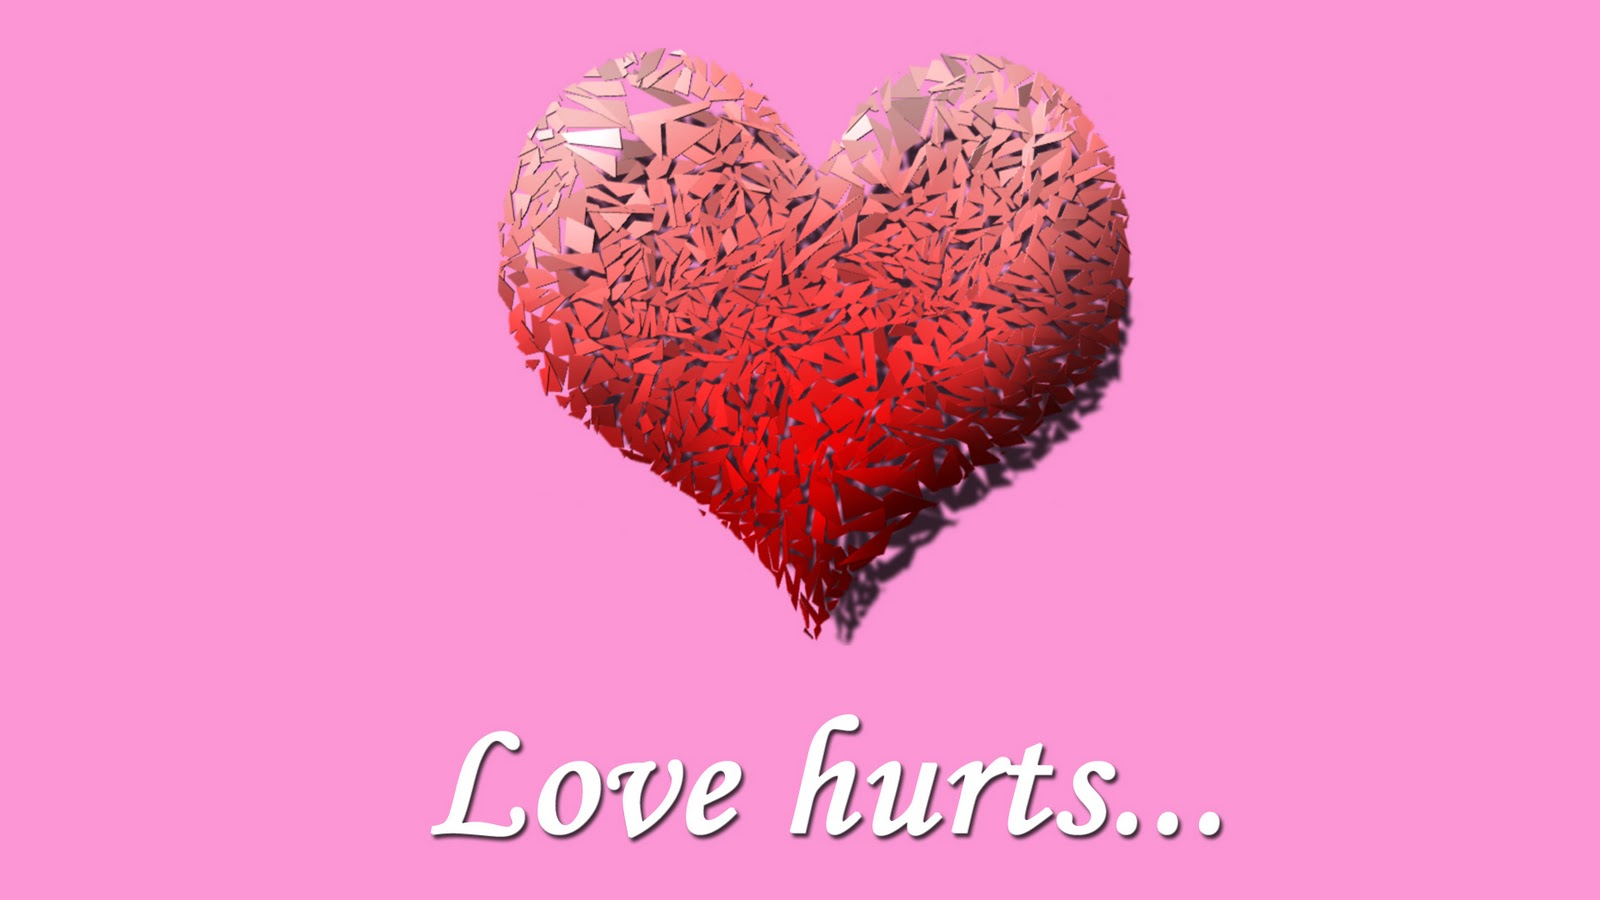 http://1.bp.blogspot.com/-qTEGbJqCvxg/TttZNgxZ7xI/AAAAAAAABRs/GP5O8vkDiOY/s1600/love-wallpapers-50-hd-love-wallpaper-love-broken-heart-red-love-hurts.jpg